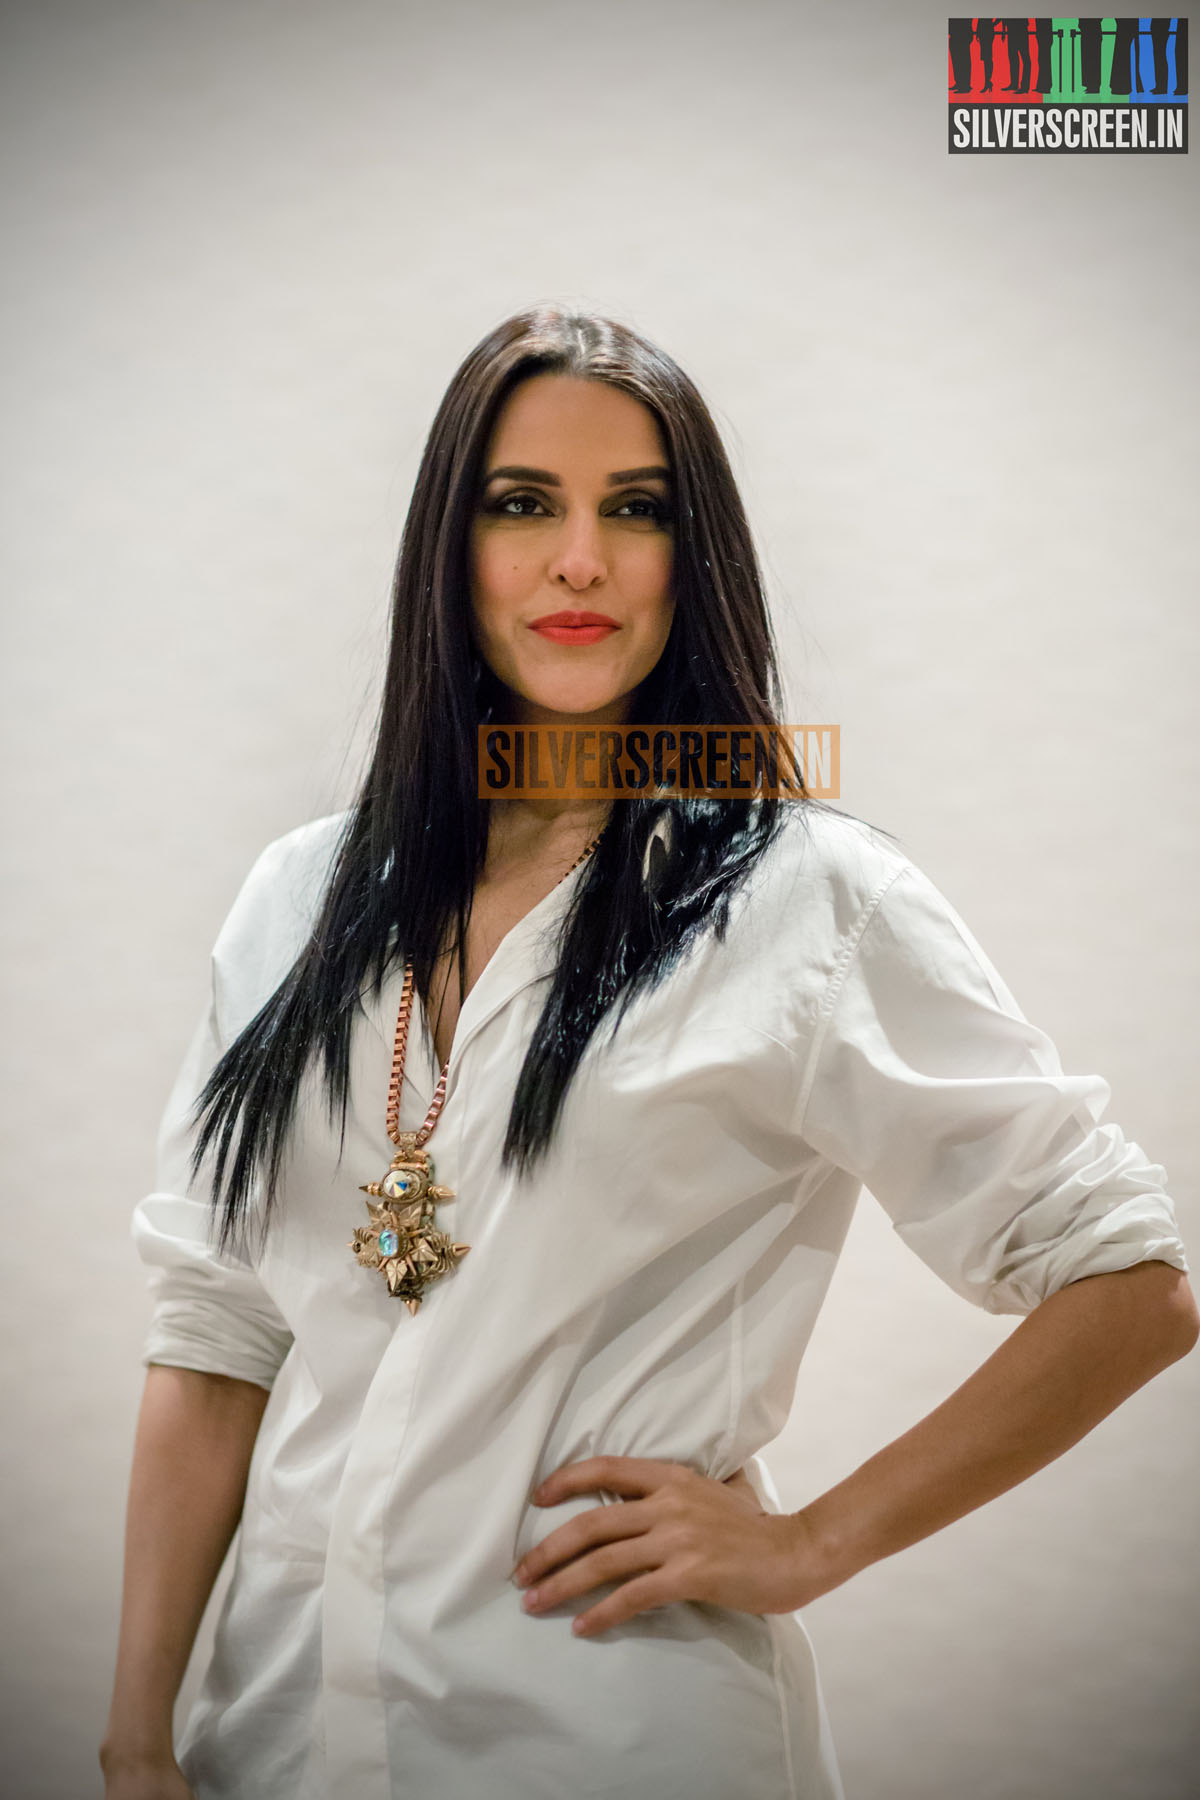 Privacy Policy >> Neha Dhupia HQ Photos from a Fashion Event in Chennai | Silverscreen.in